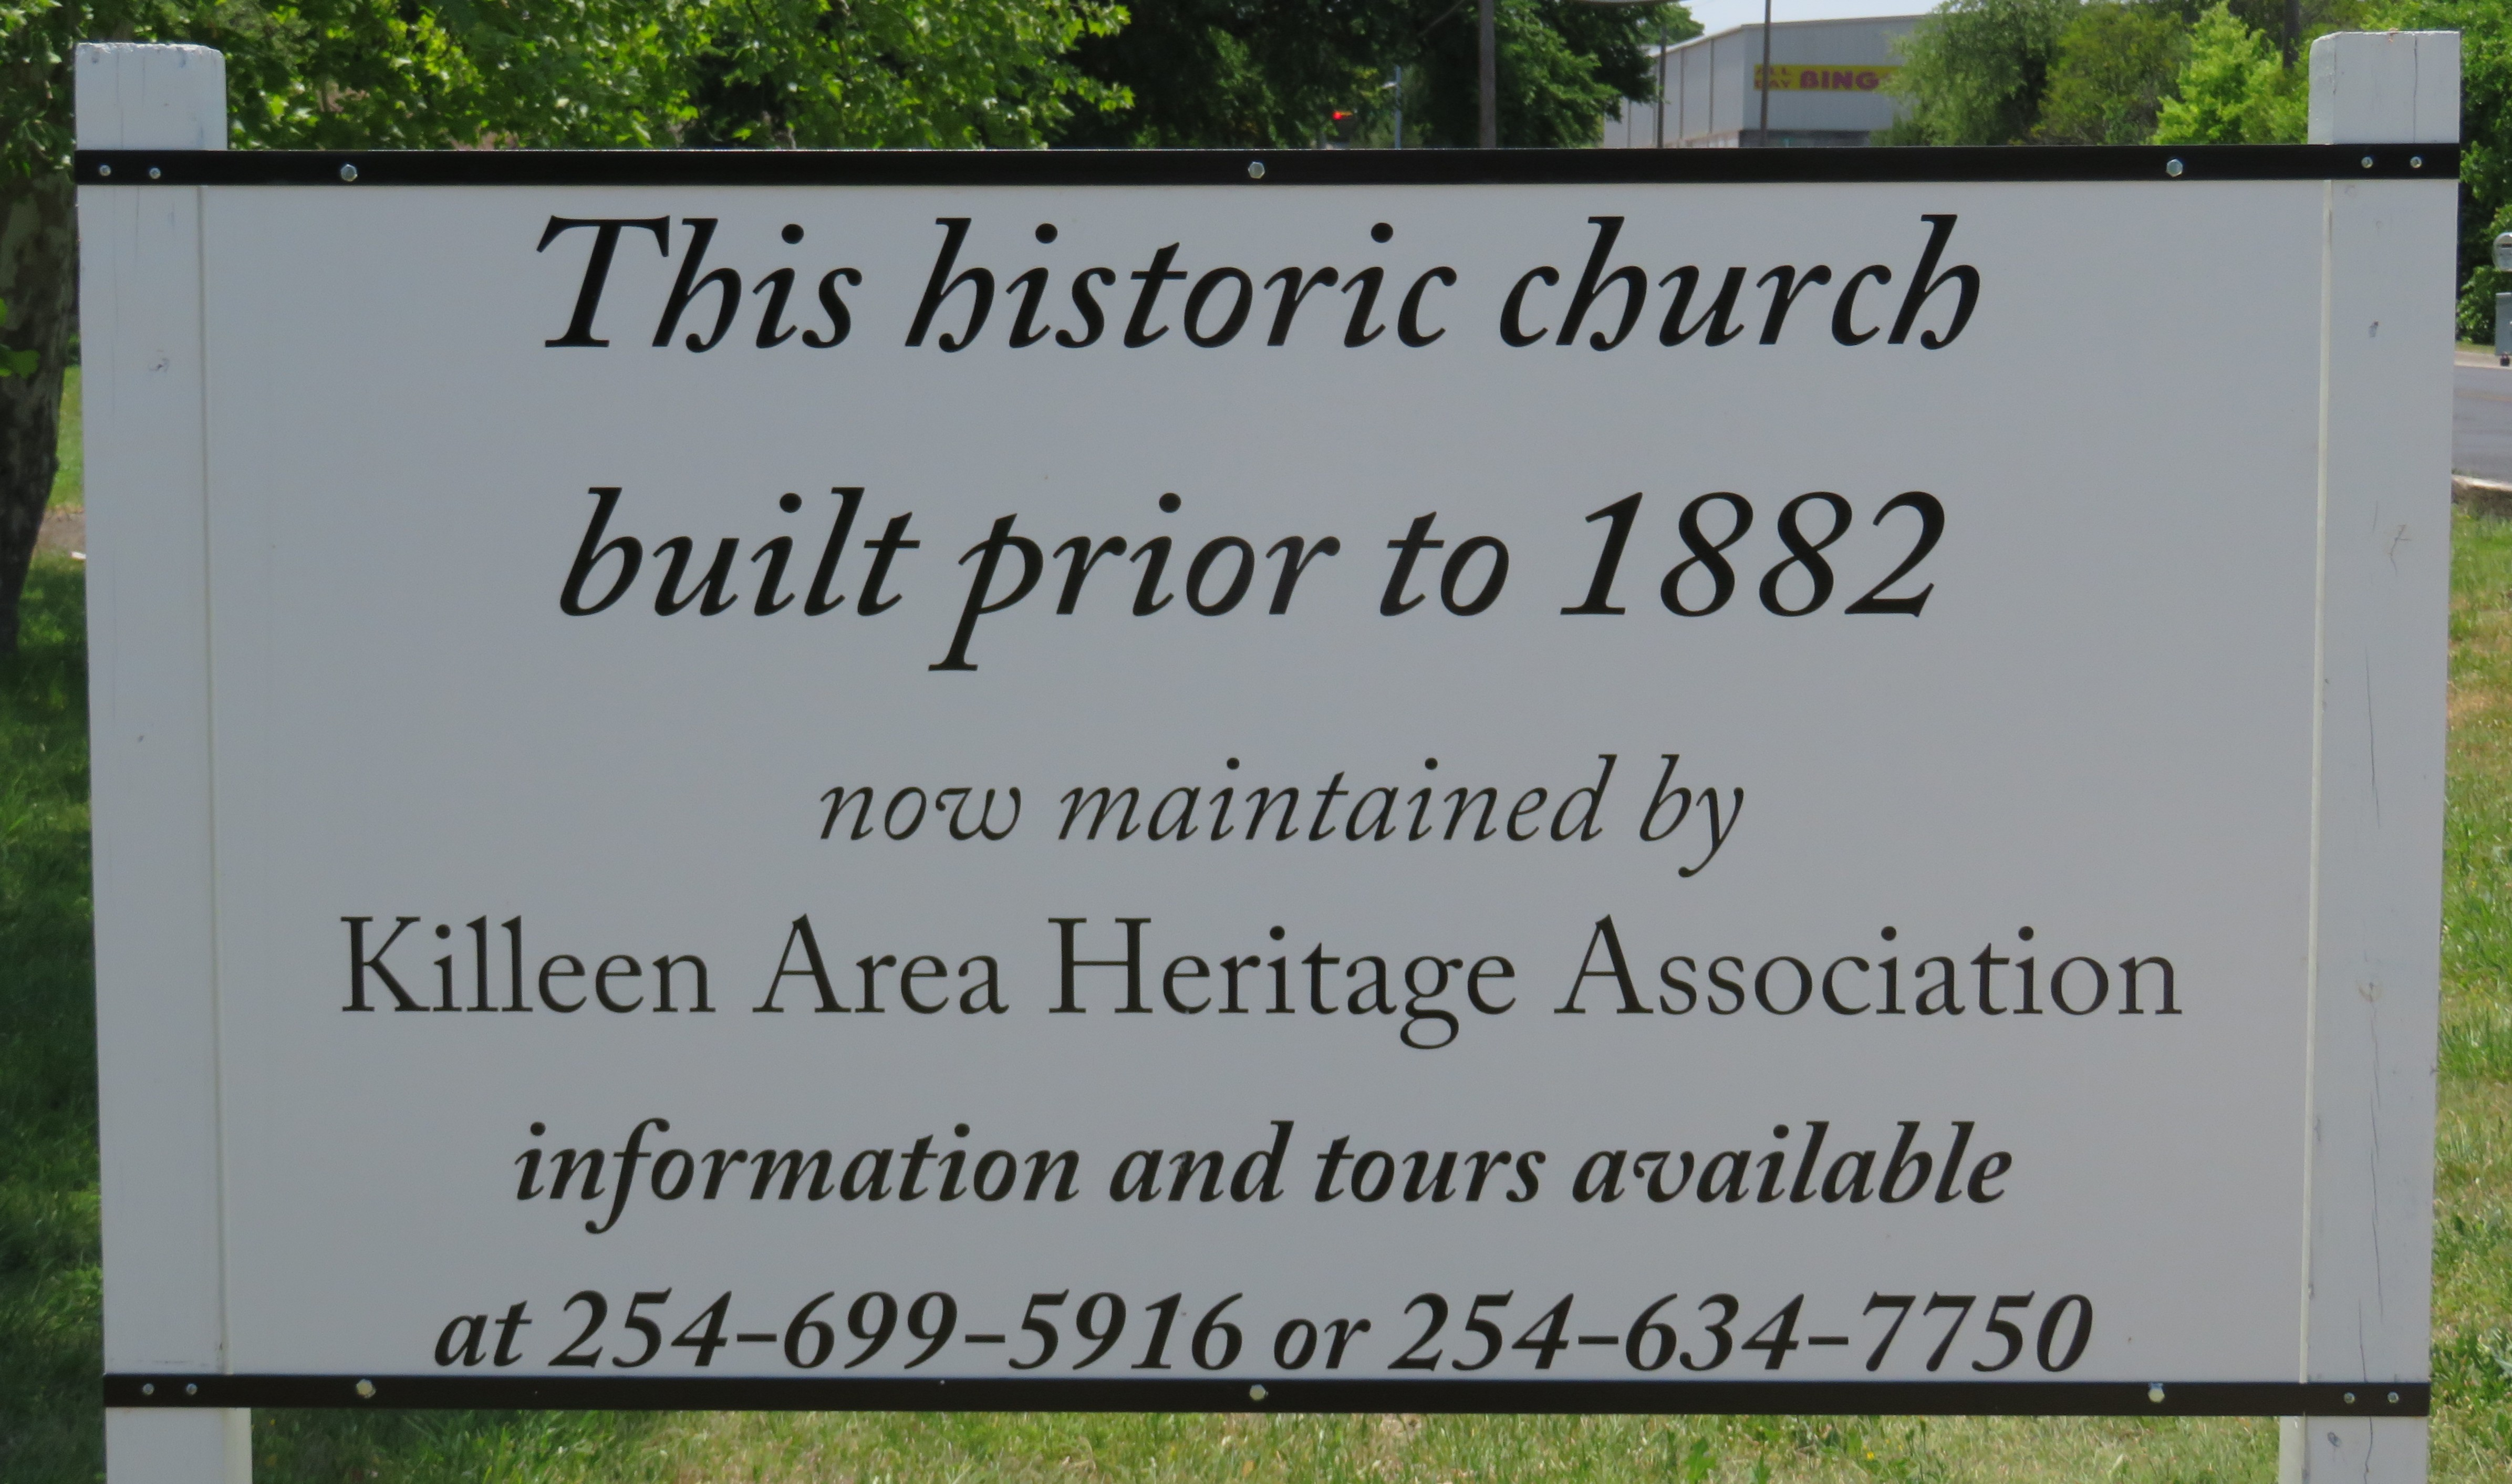 The exact date of the church's construction is unknown but given the decision to move the church to Killeen from Palo Alto, it can be assumed that it was constructed in or prior to 1882.